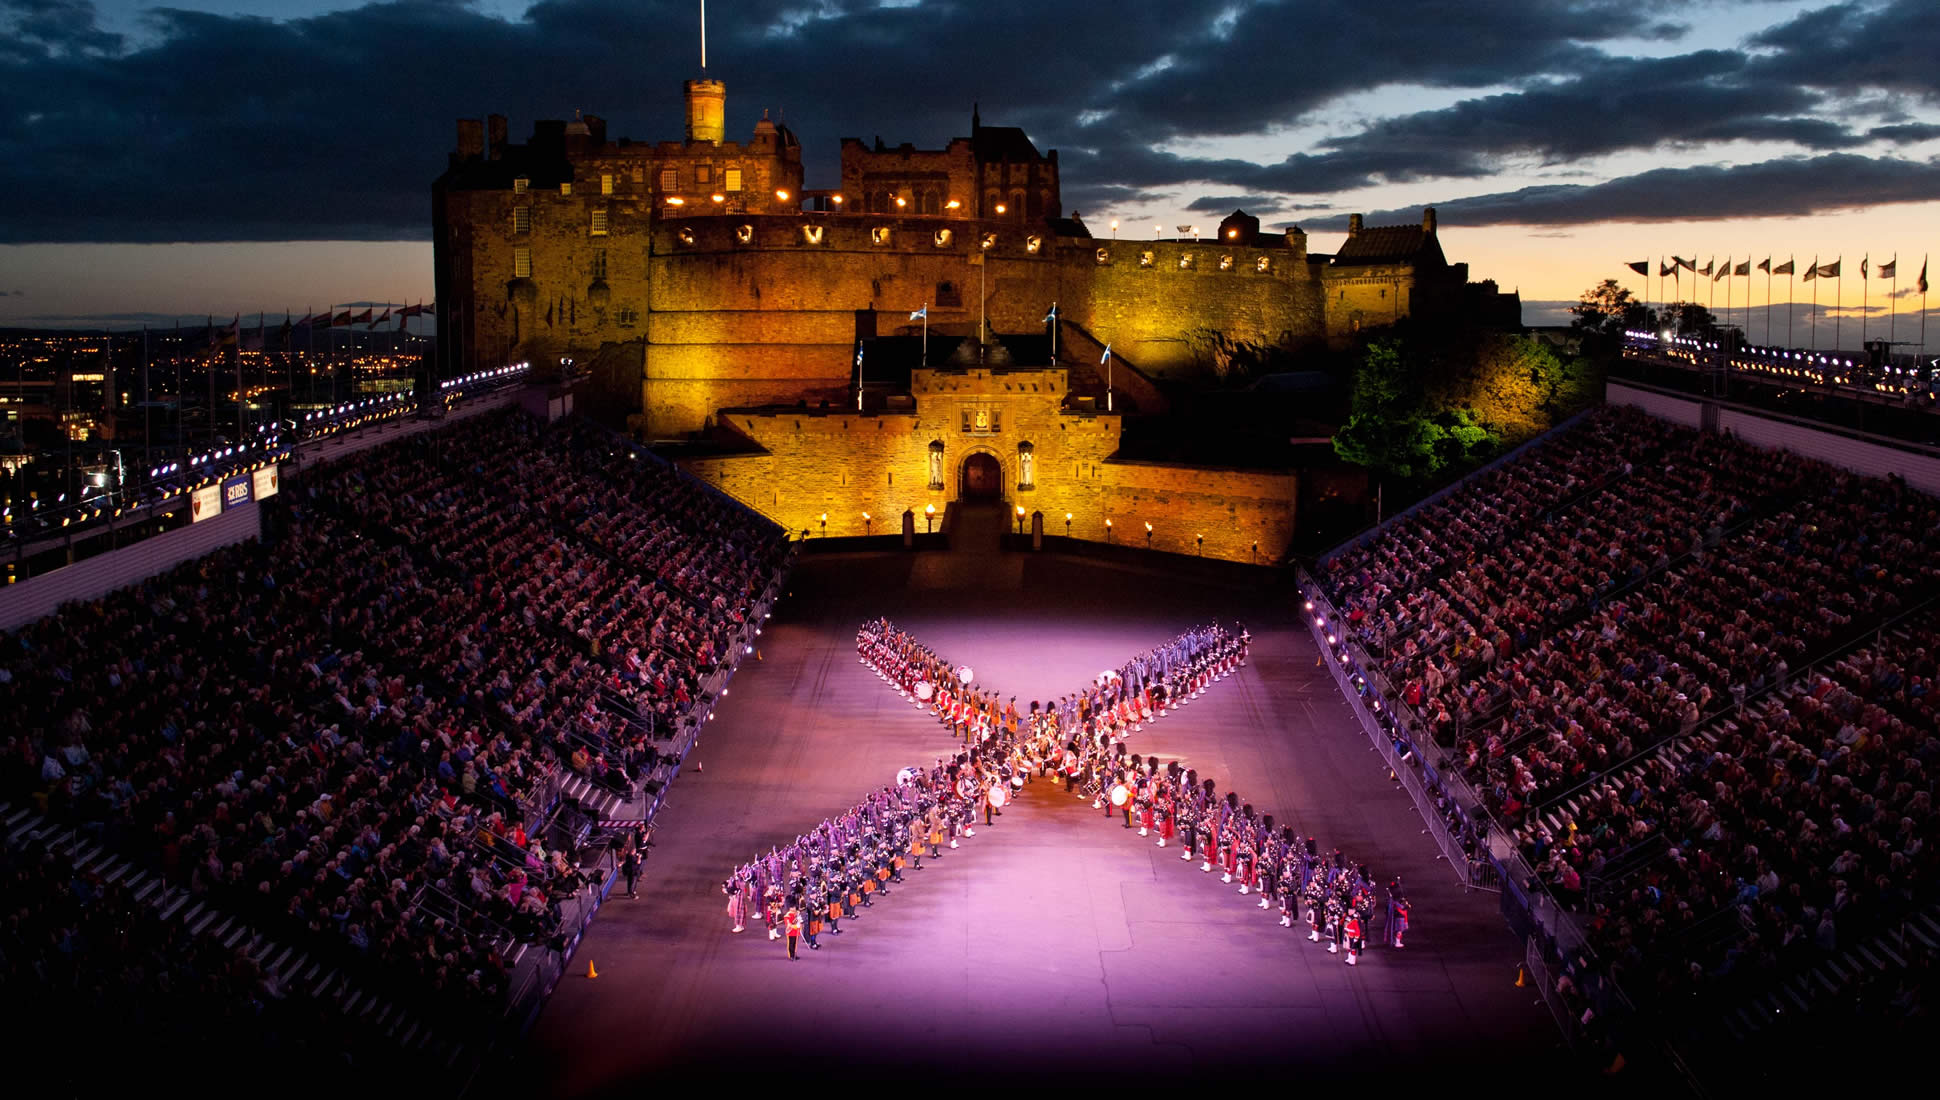 Royal military tattoo un impresionante espect culo con for Royal military tattoo